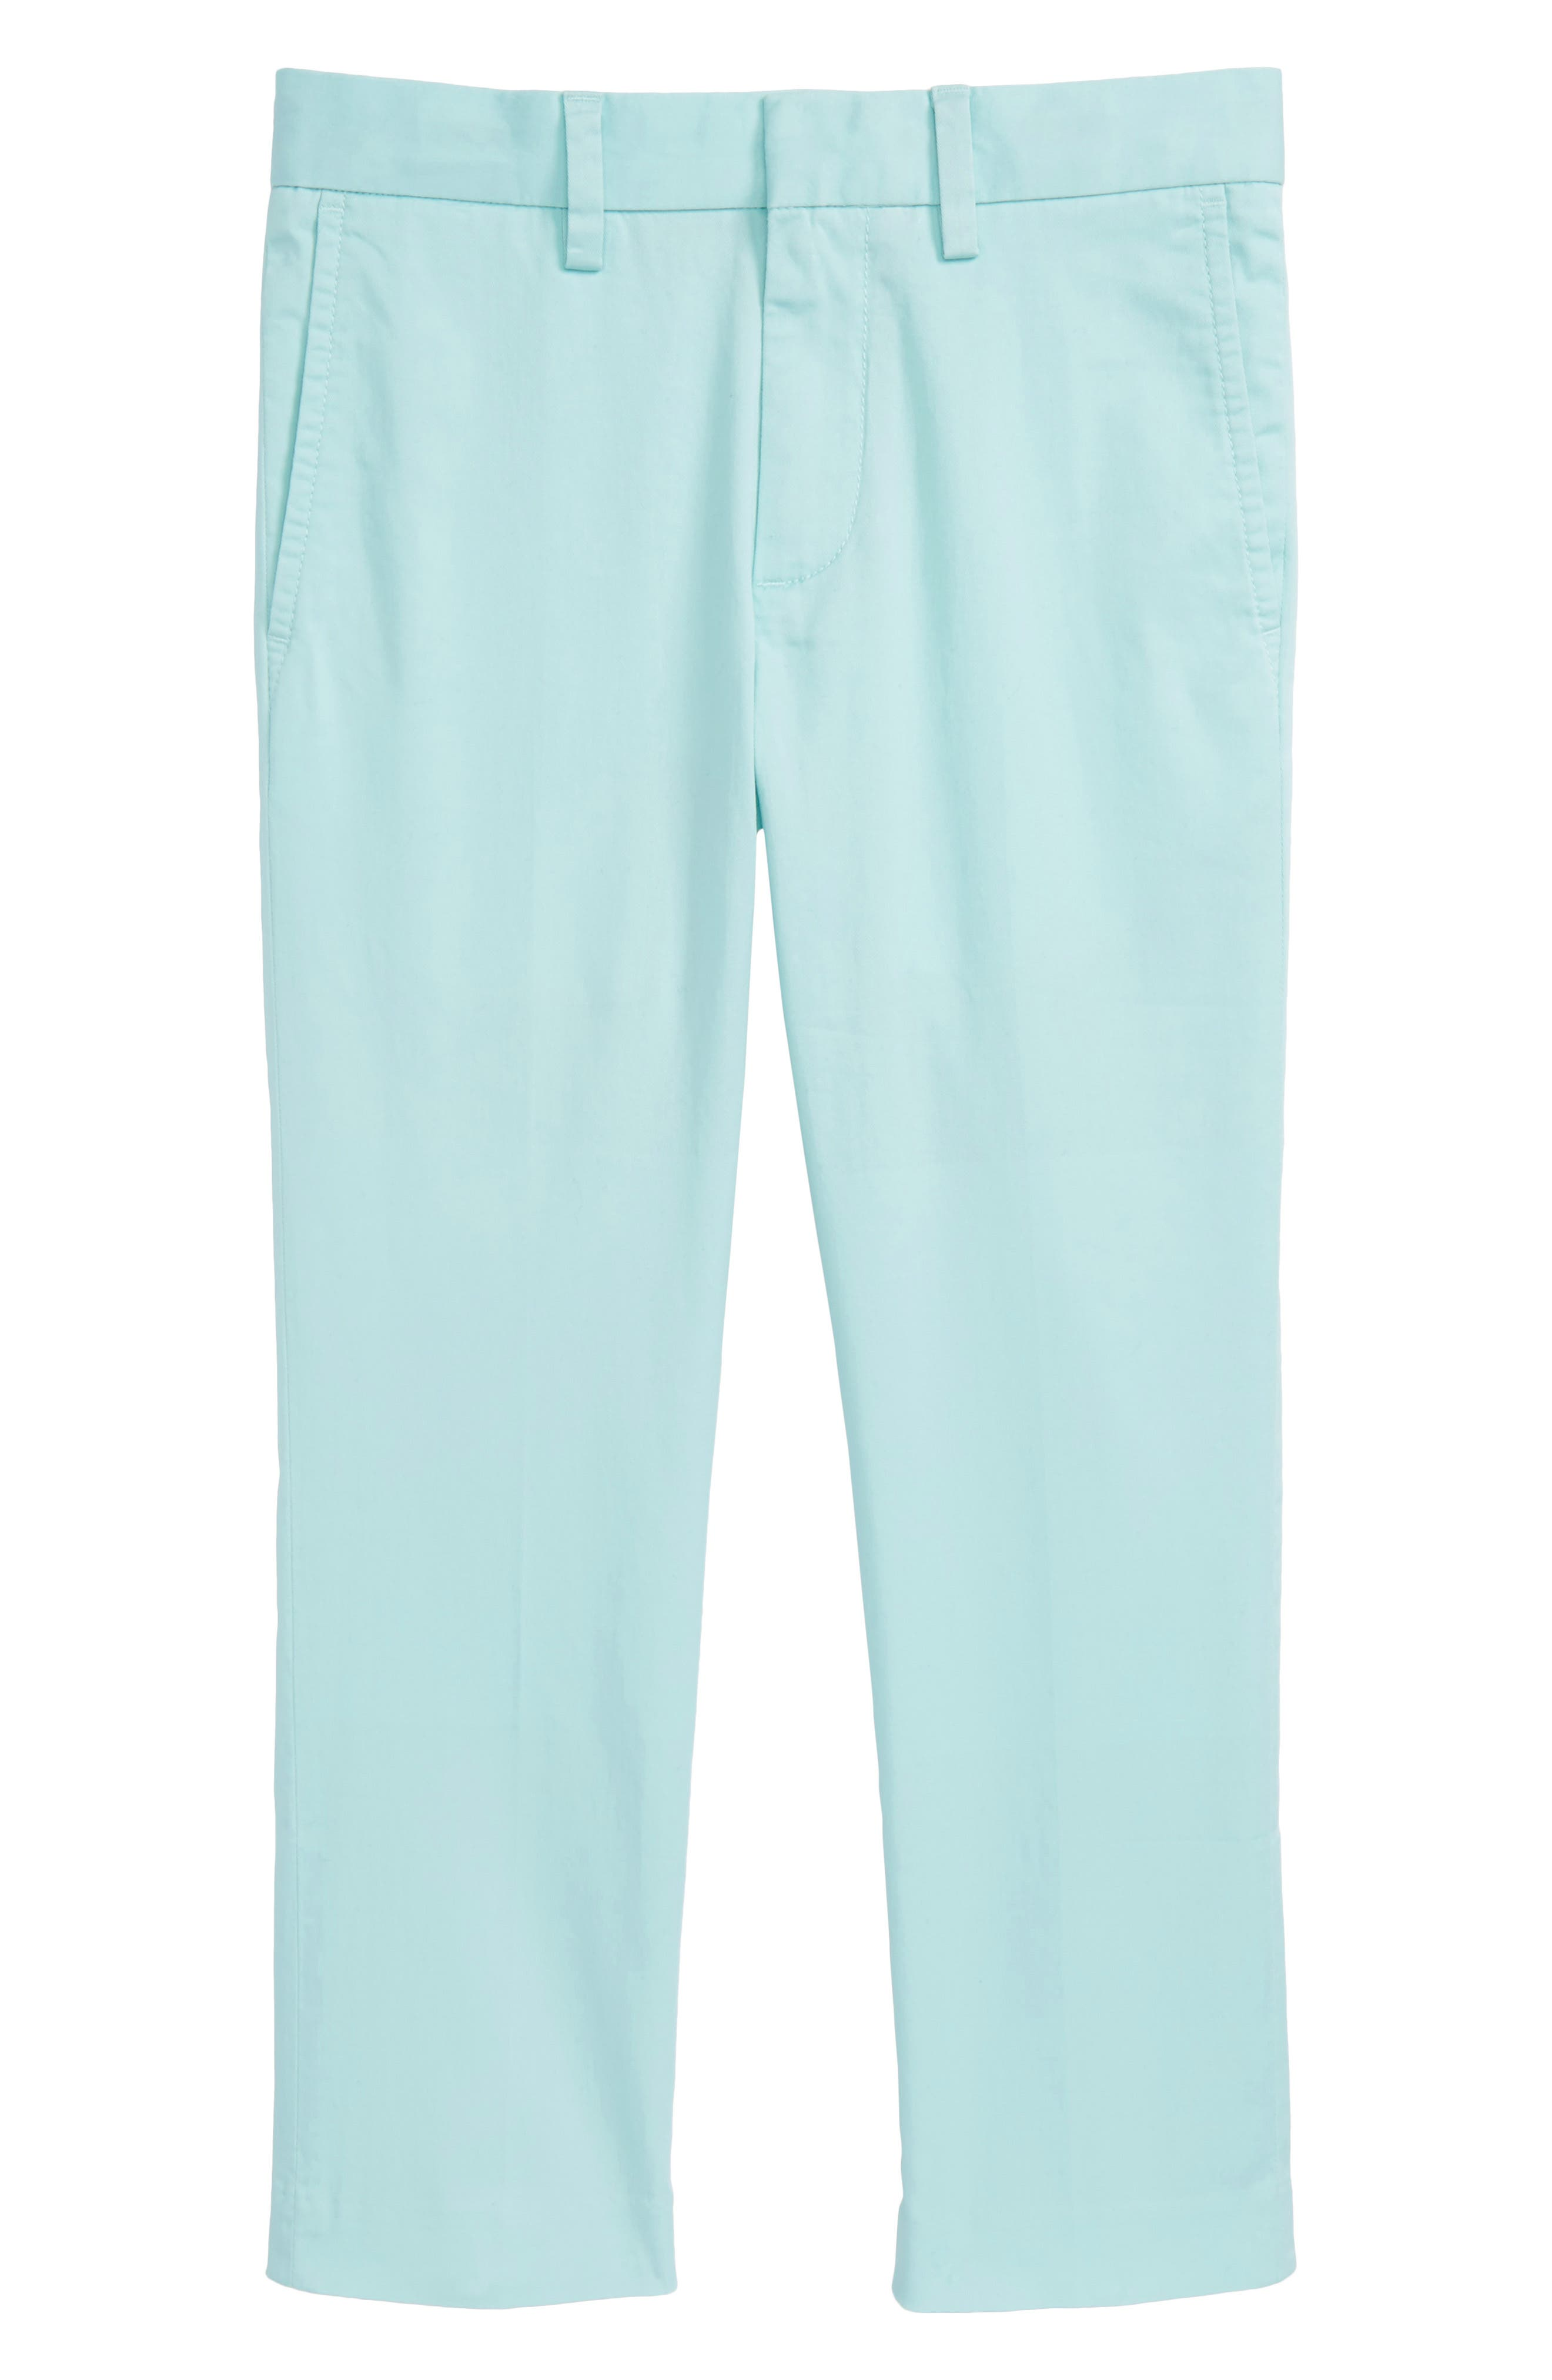 Slim Fit Stretch Chino Pants,                         Main,                         color, Sundrenched Aqua